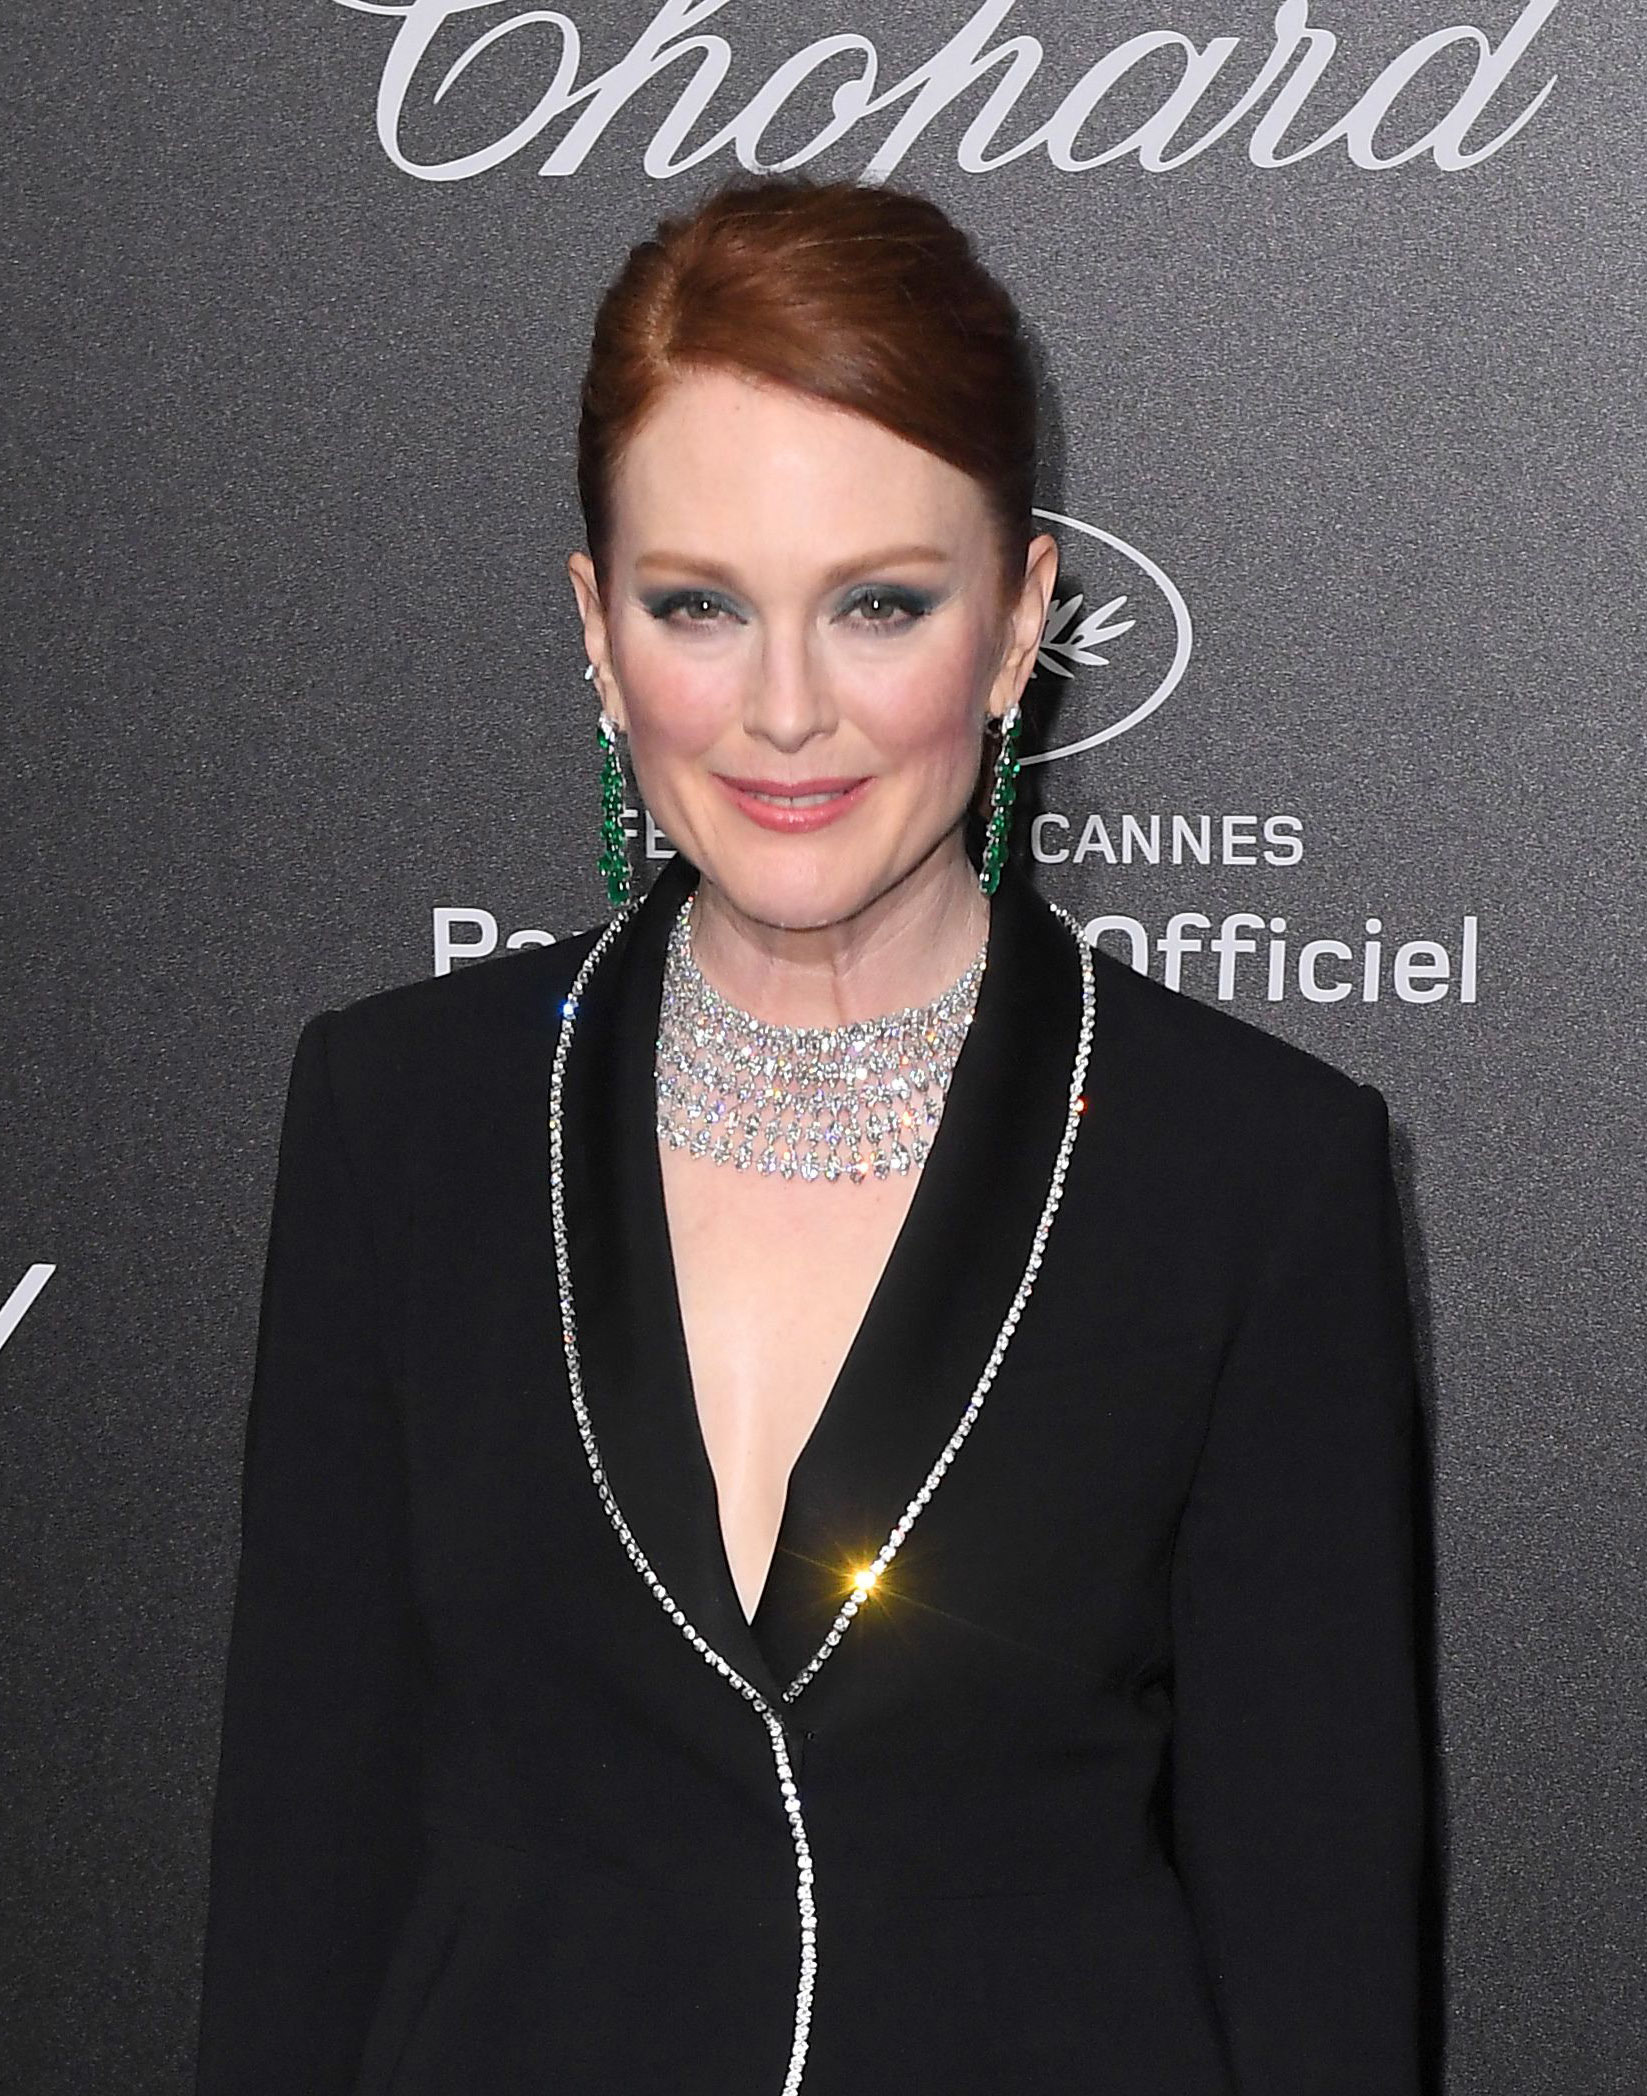 Julianne Moore attends the Secret Chopard party for the 71st Cannes Film Festival on May 11, 2018.